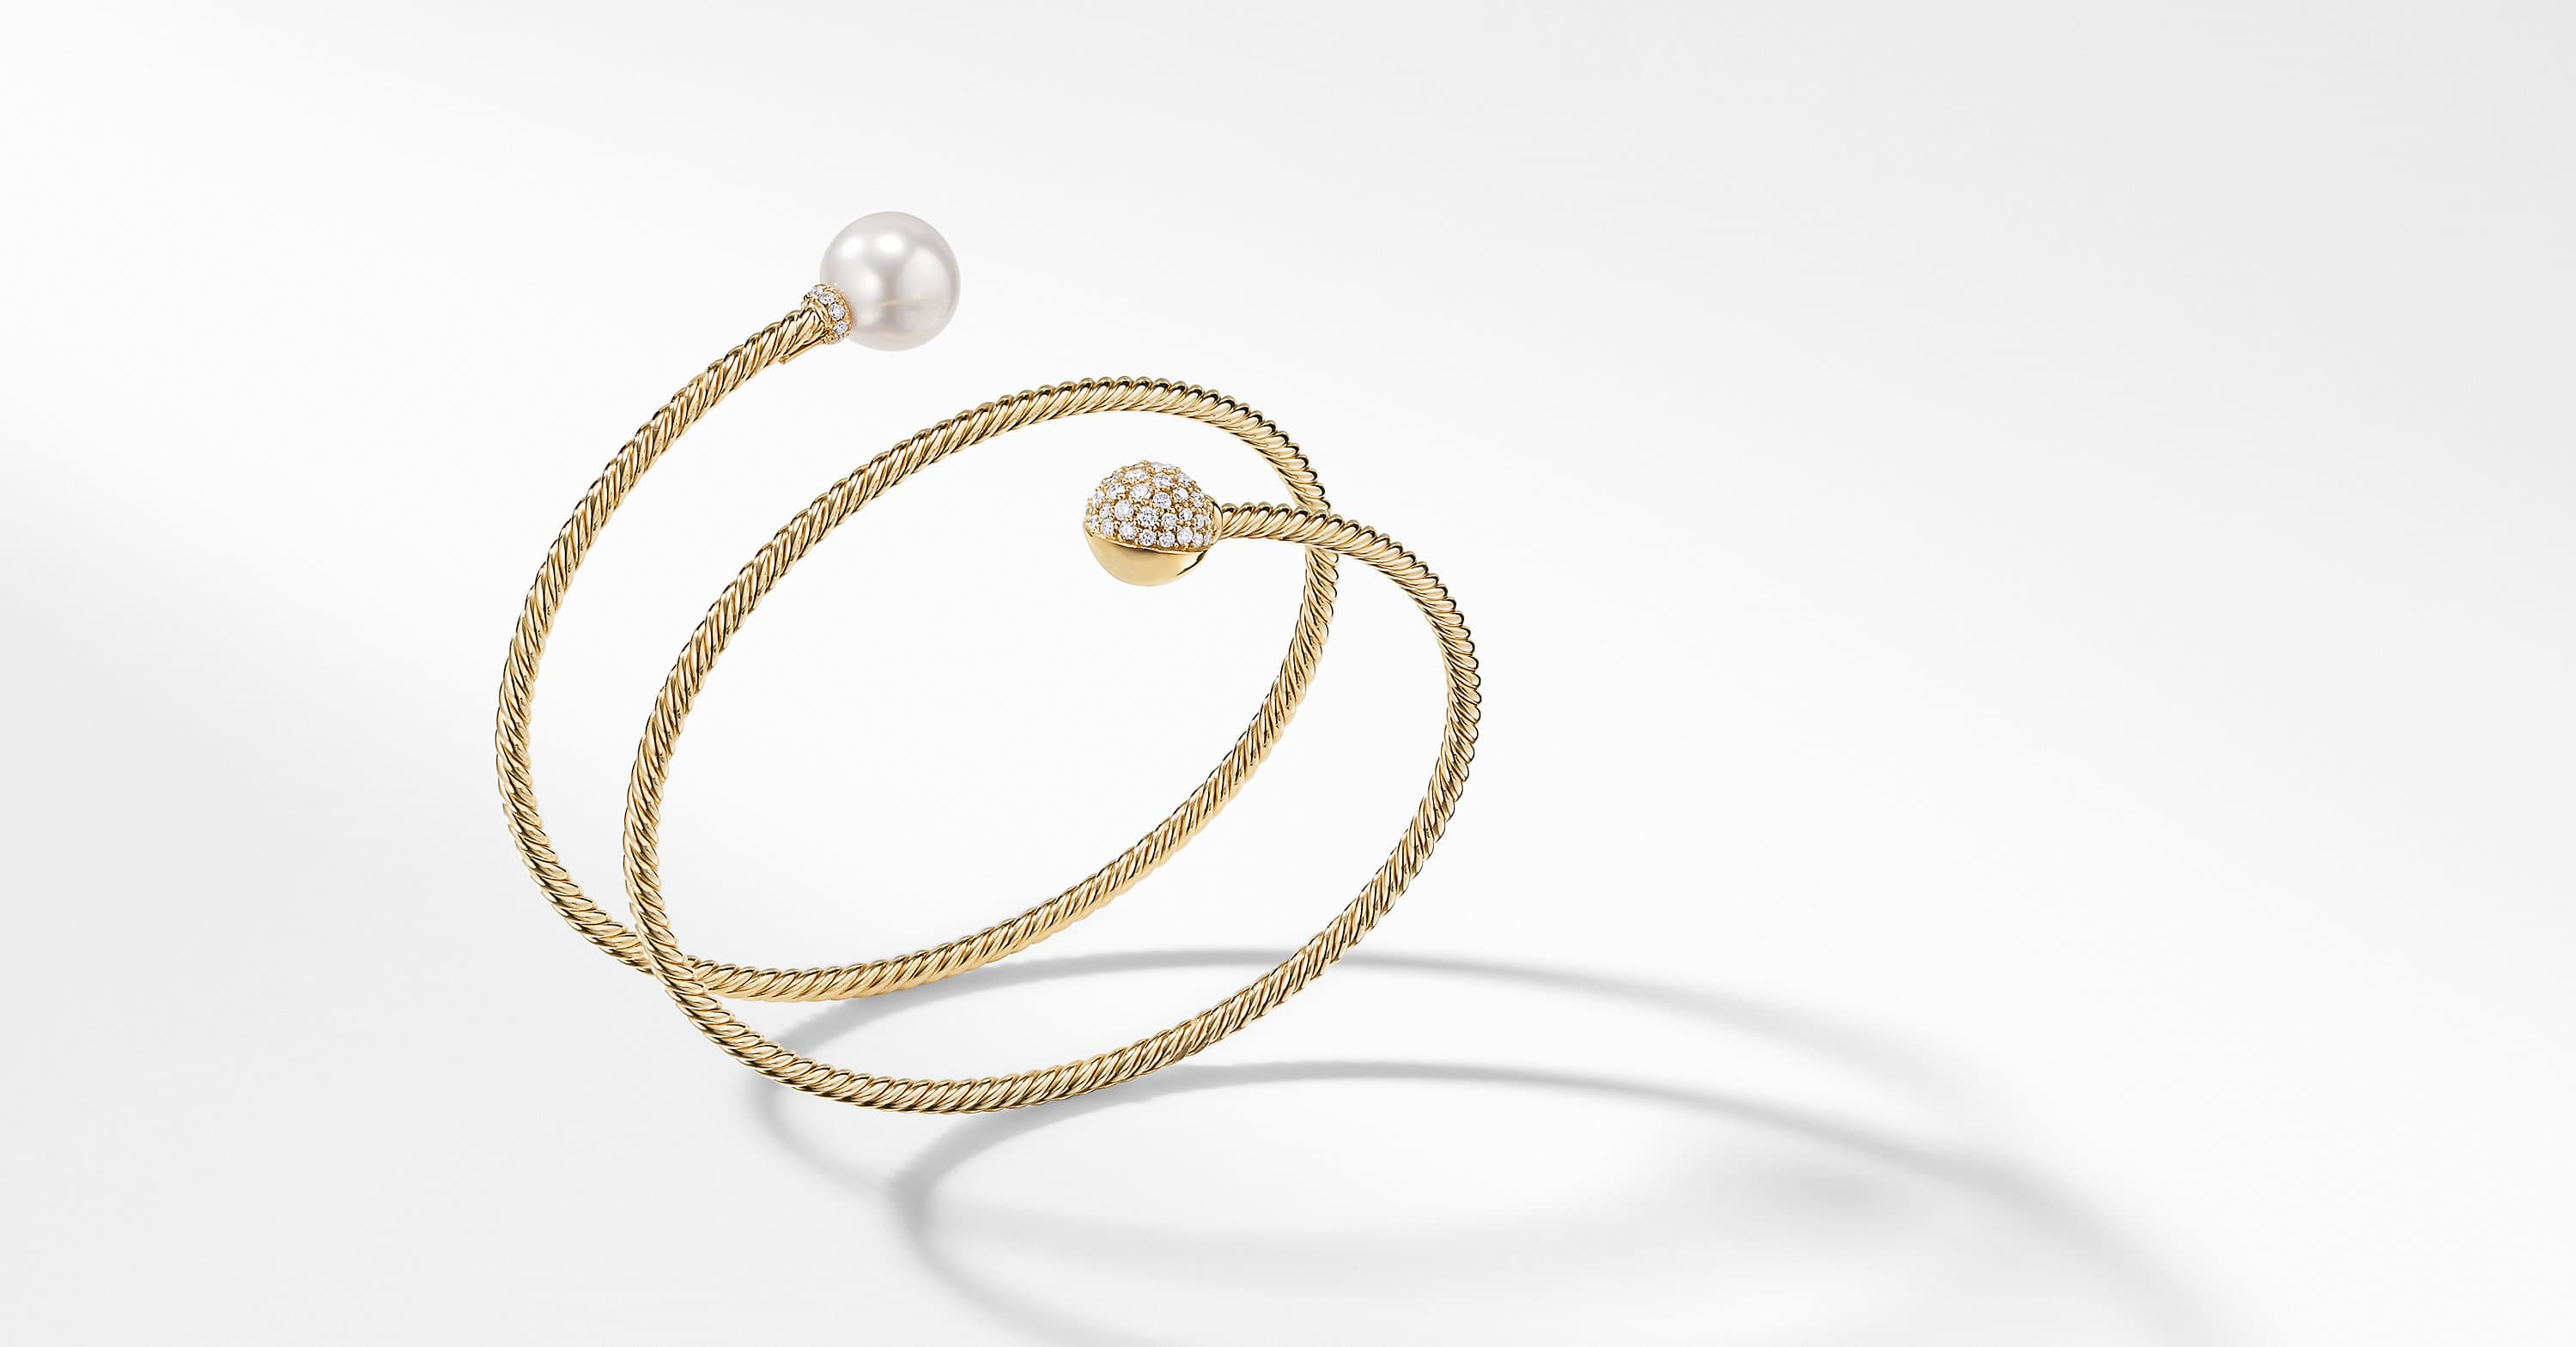 Petite Solari Coil Bracelet with Diamonds in 18K Gold